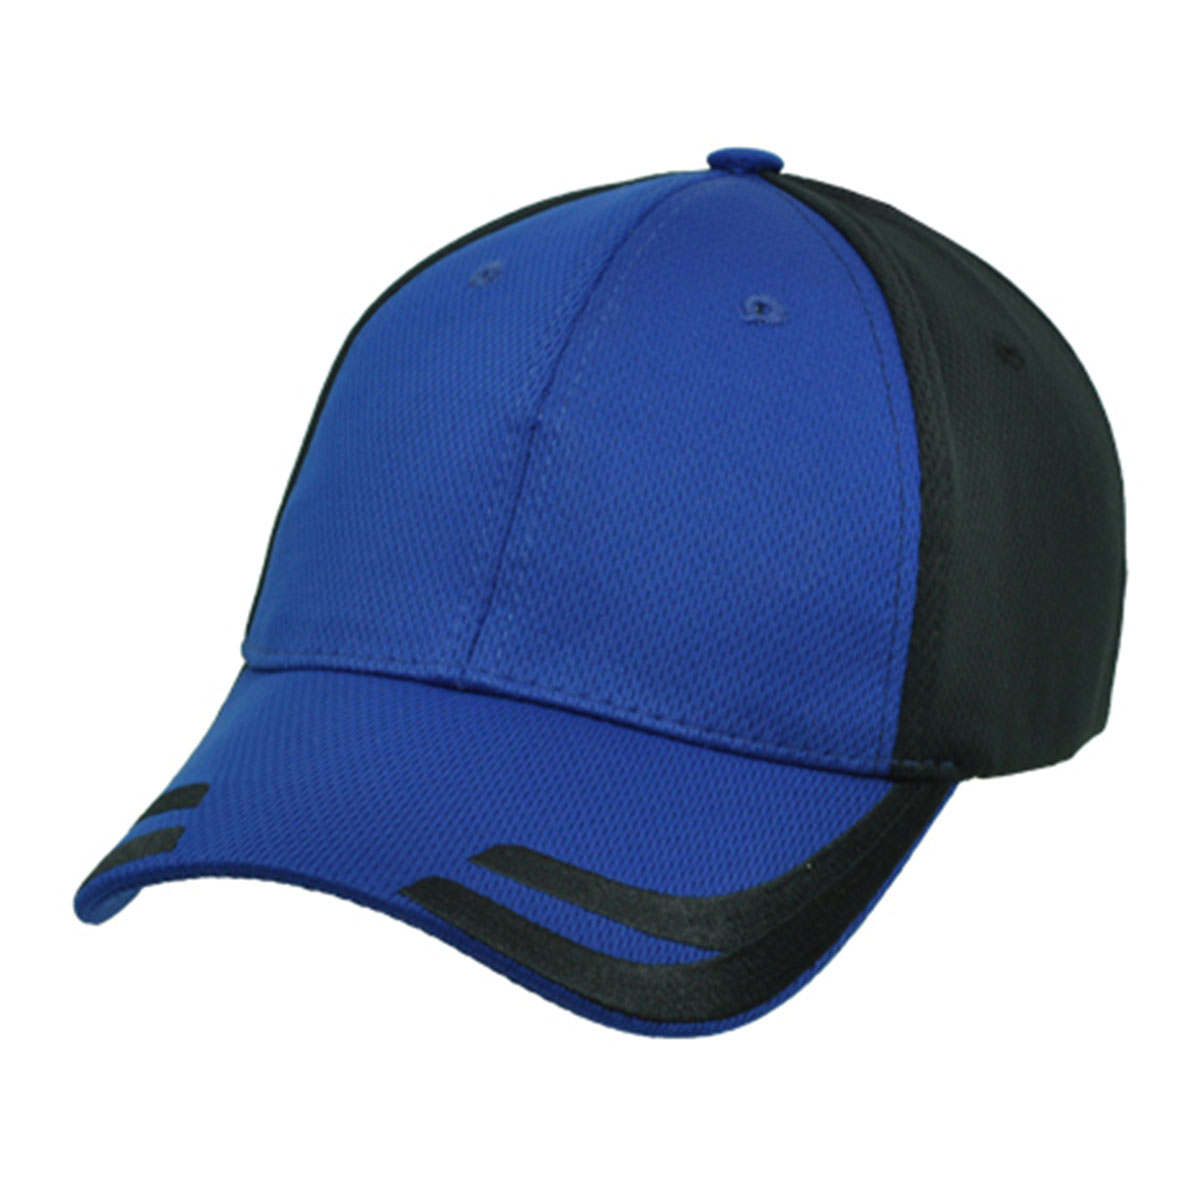 Tiburon Cap-Royal / Black